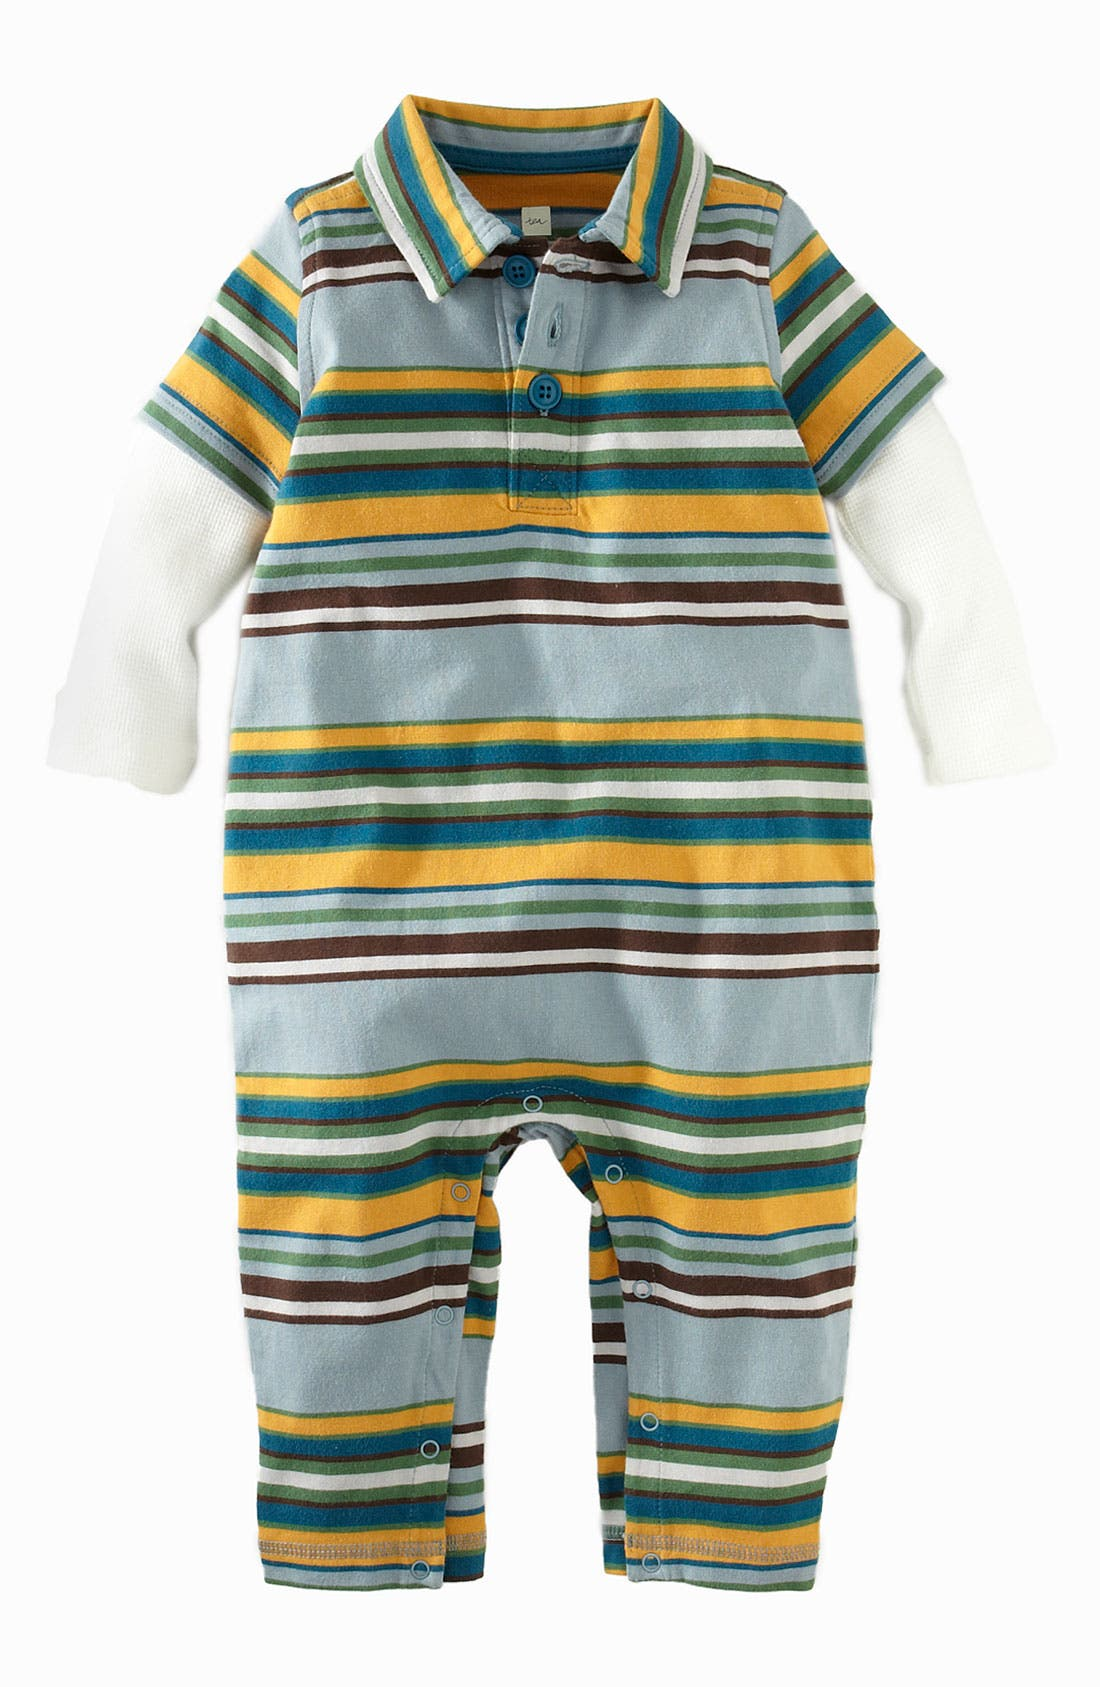 Main Image - Tea Collection 'Ski' Stripe Romper (Infant)